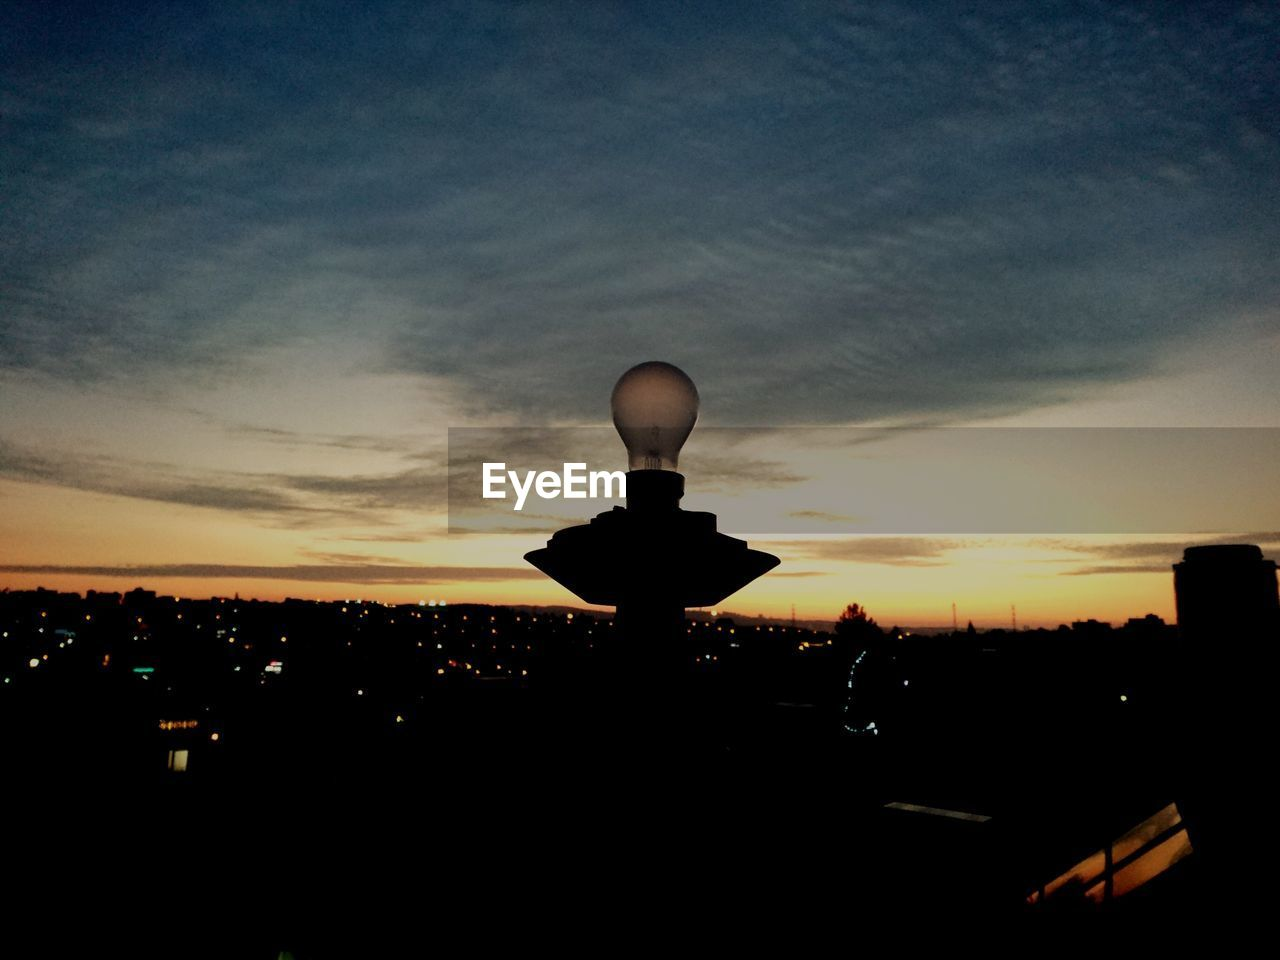 sunset, silhouette, sky, illuminated, no people, architecture, nature, outdoors, building exterior, beauty in nature, city, close-up, day